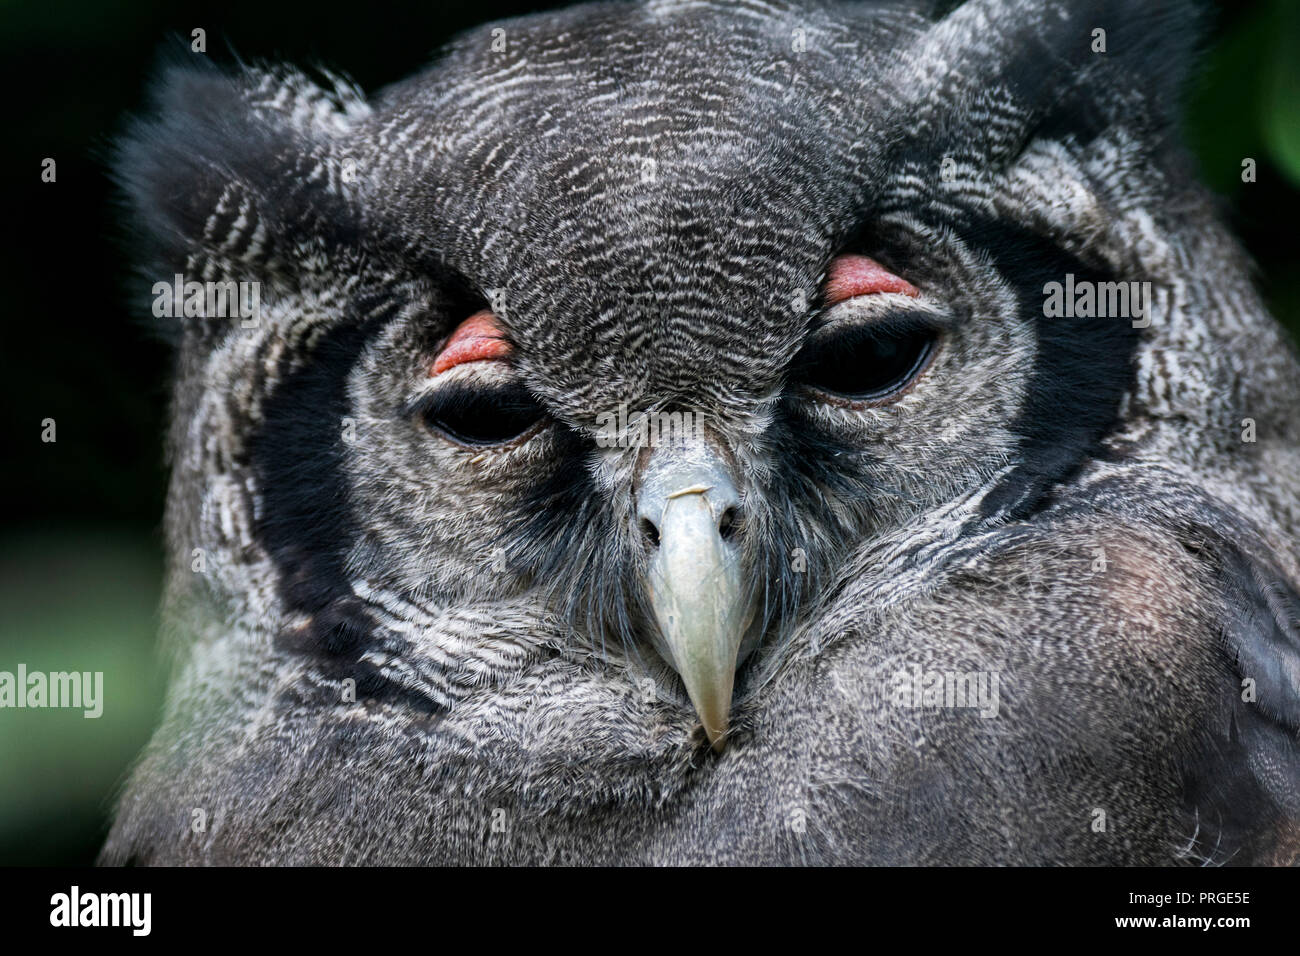 Close up portrait of Verreaux's eagle-owl / milky eagle owl / giant eagle owl (Bubo lacteus) resting and showing pink eyelids, native to Africa - Stock Image